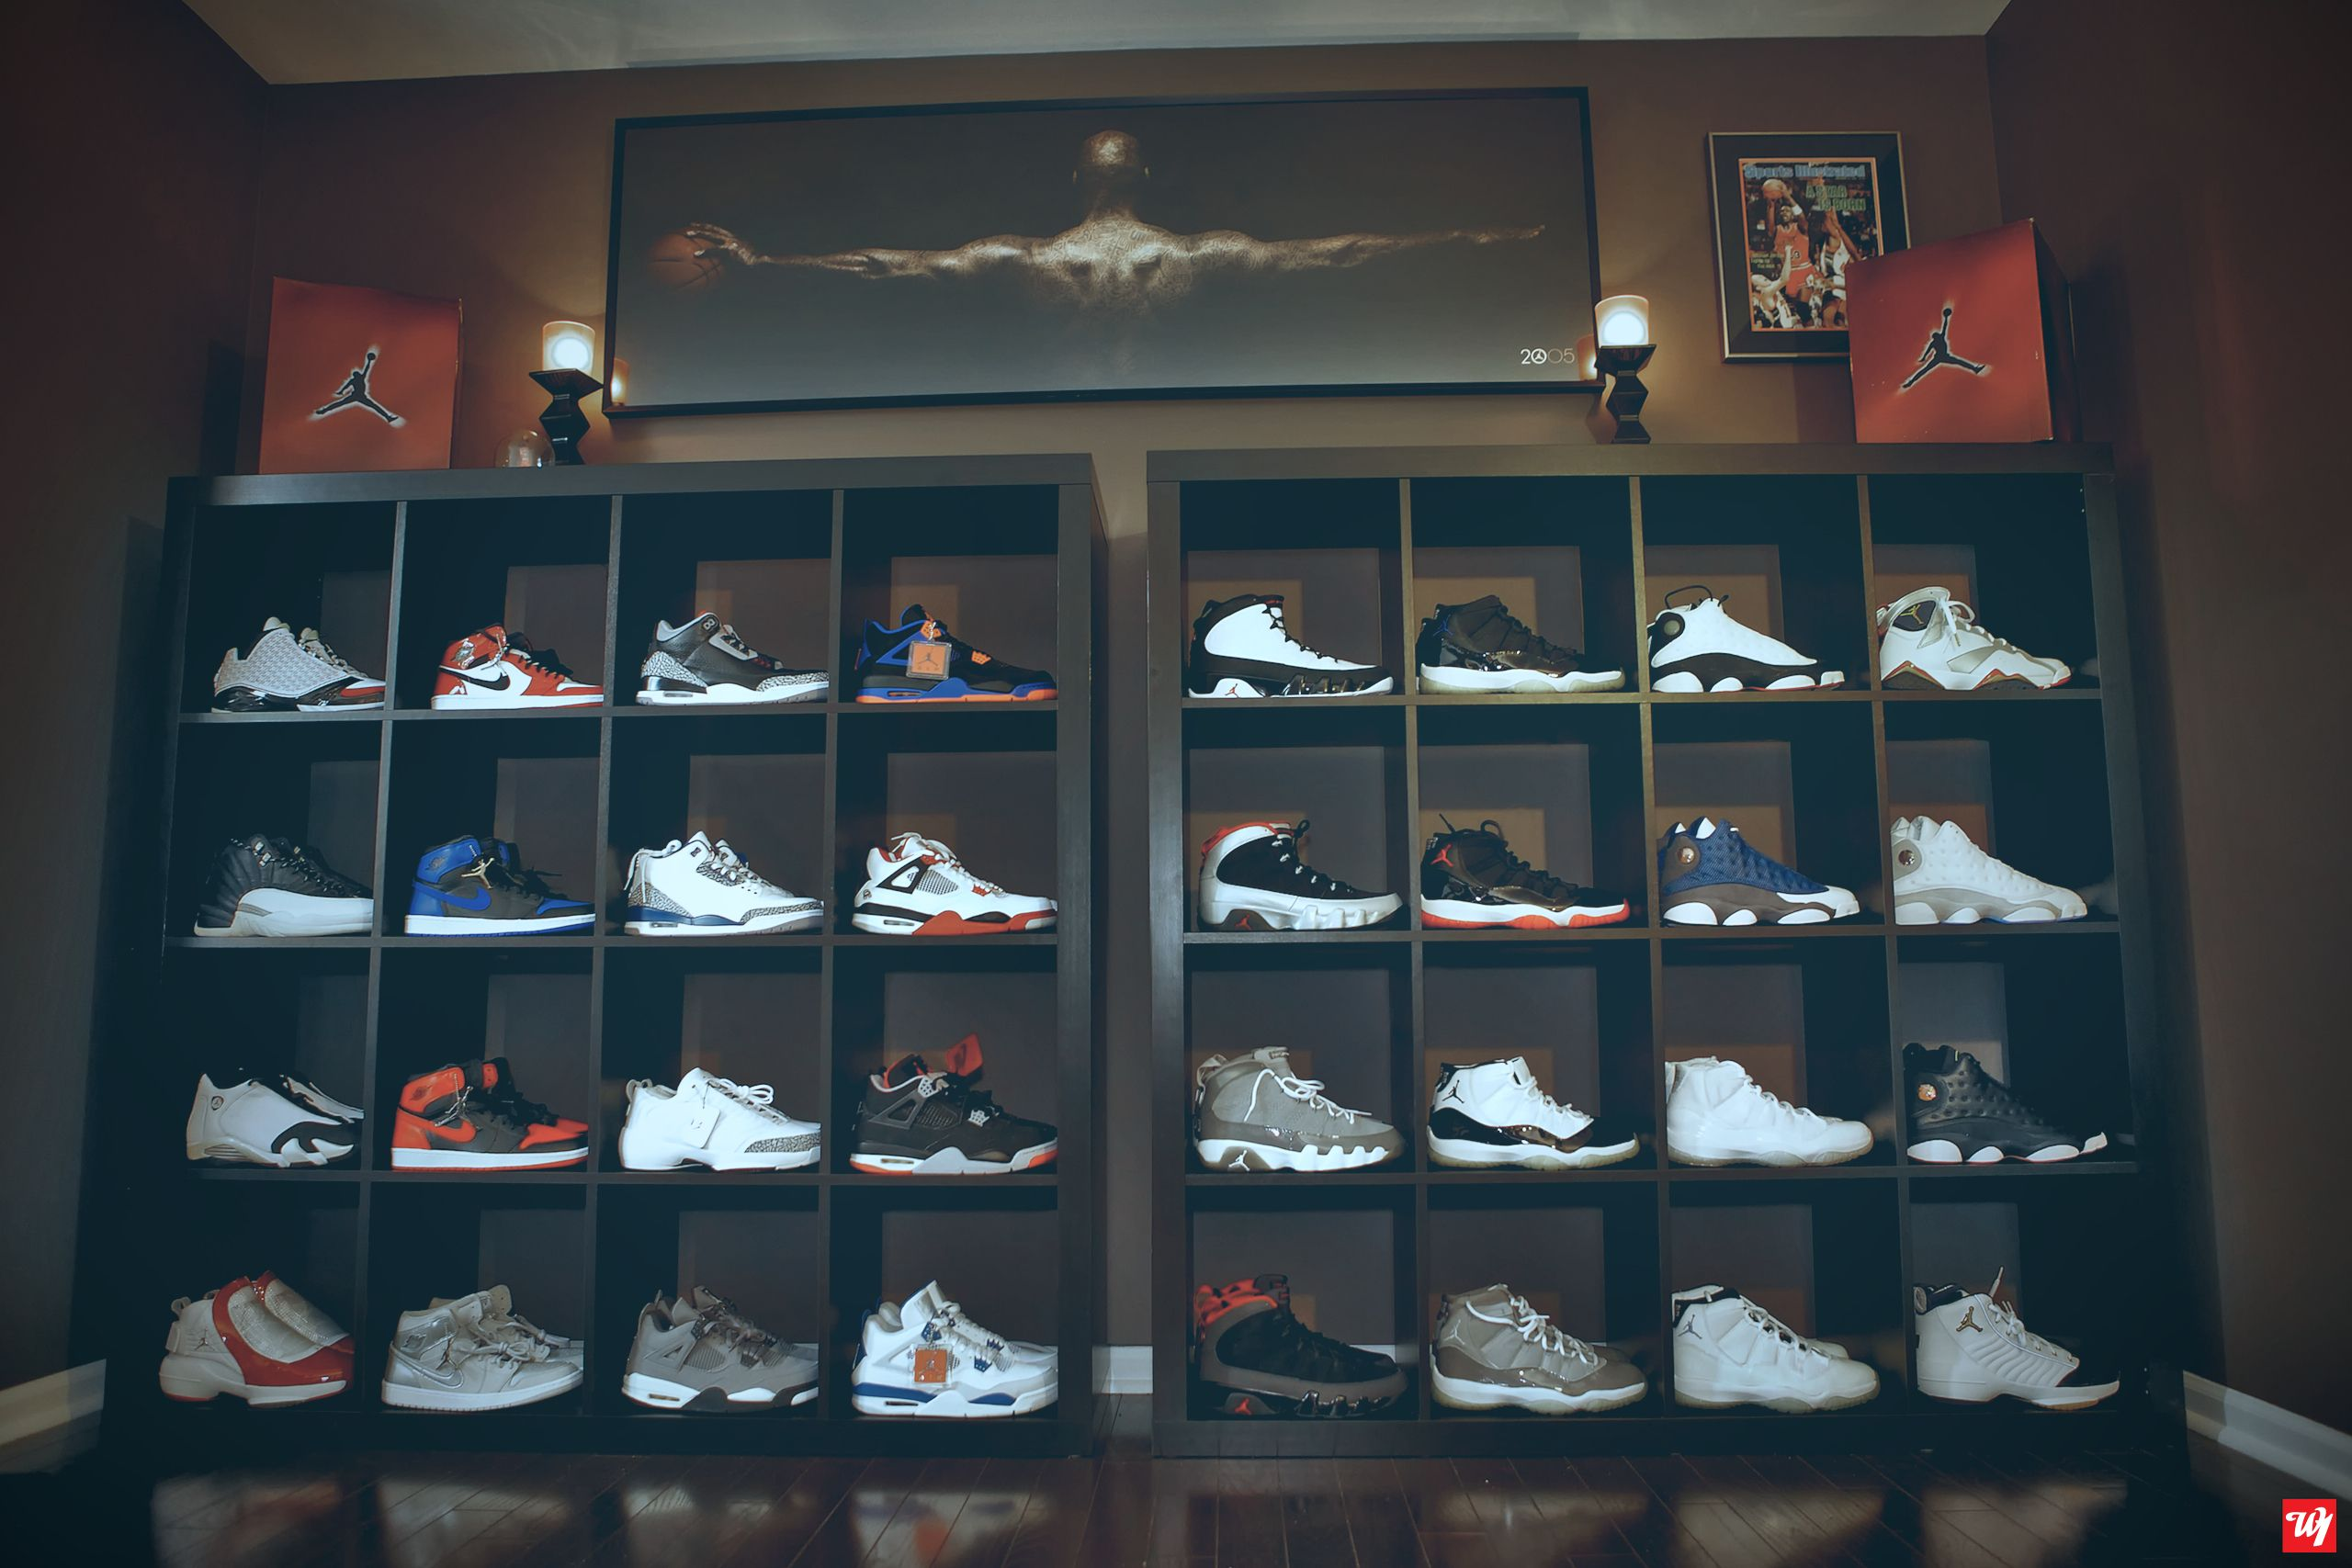 eb38c5a5edd Ward 1 Air Jordan Collection Shoe Room [ Air Jordan Deadstock ] wall.  Sneakerhead Organization